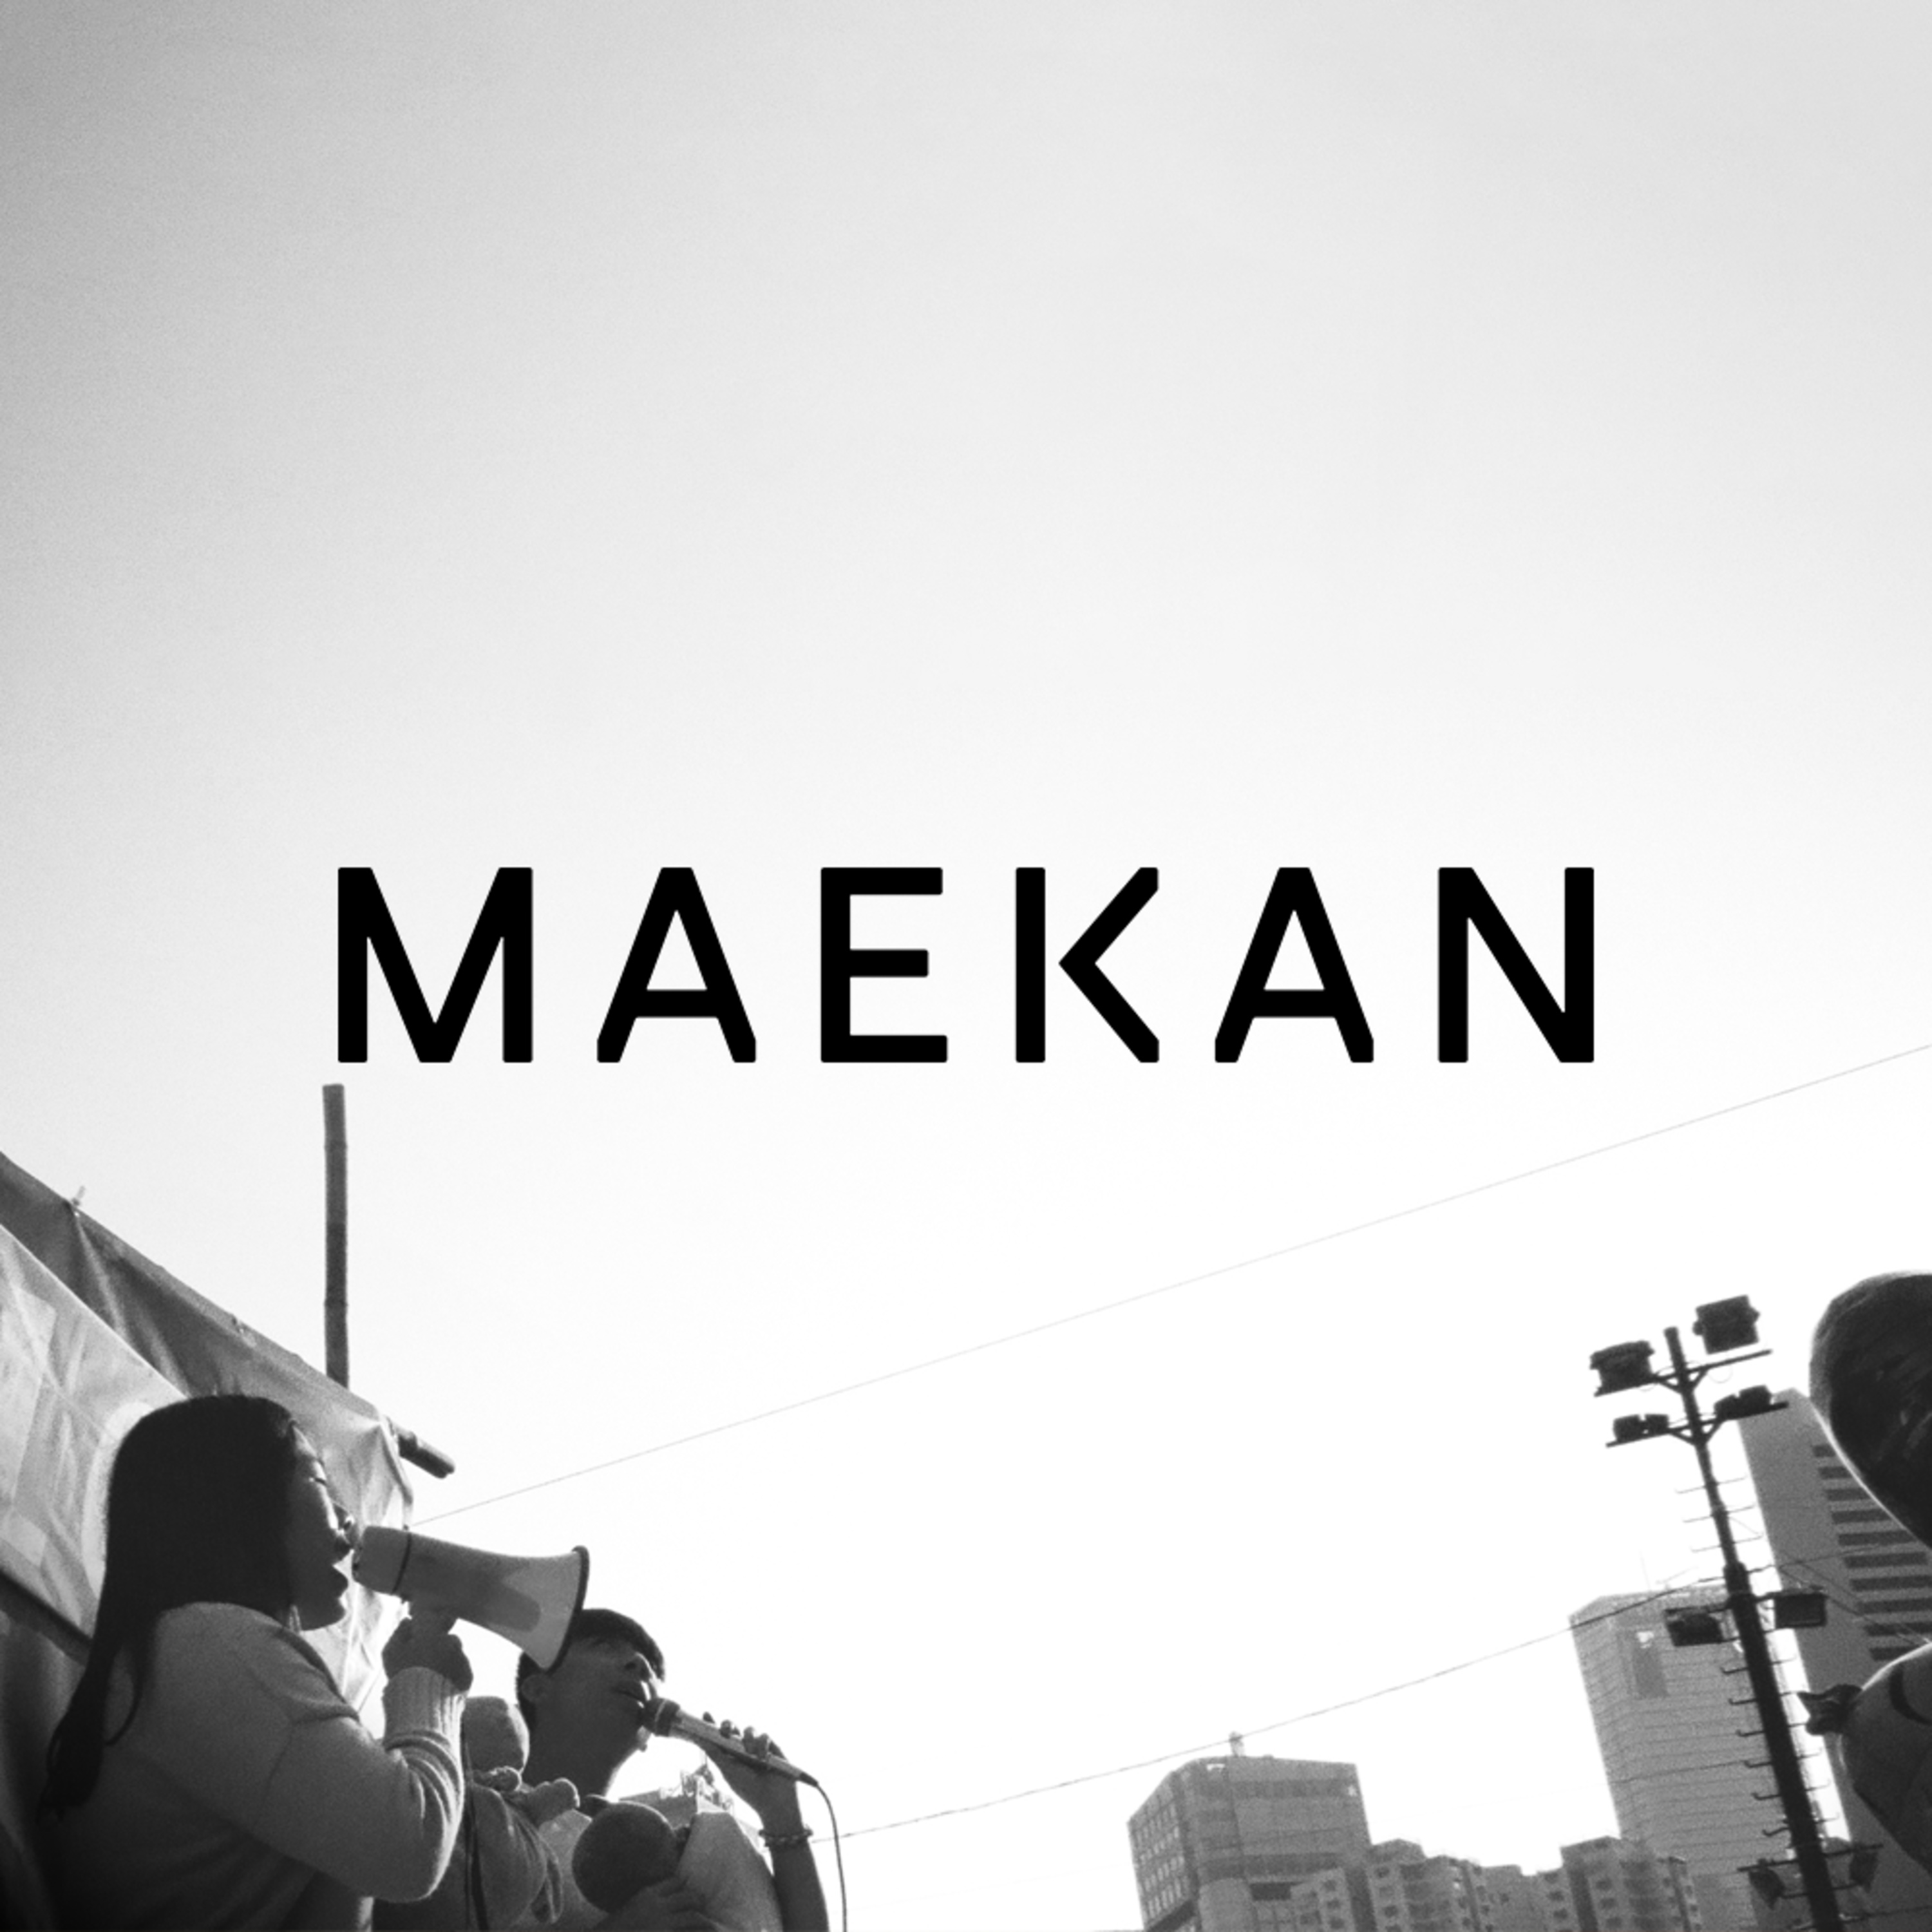 MAEKAN Session — The Need for Criticism